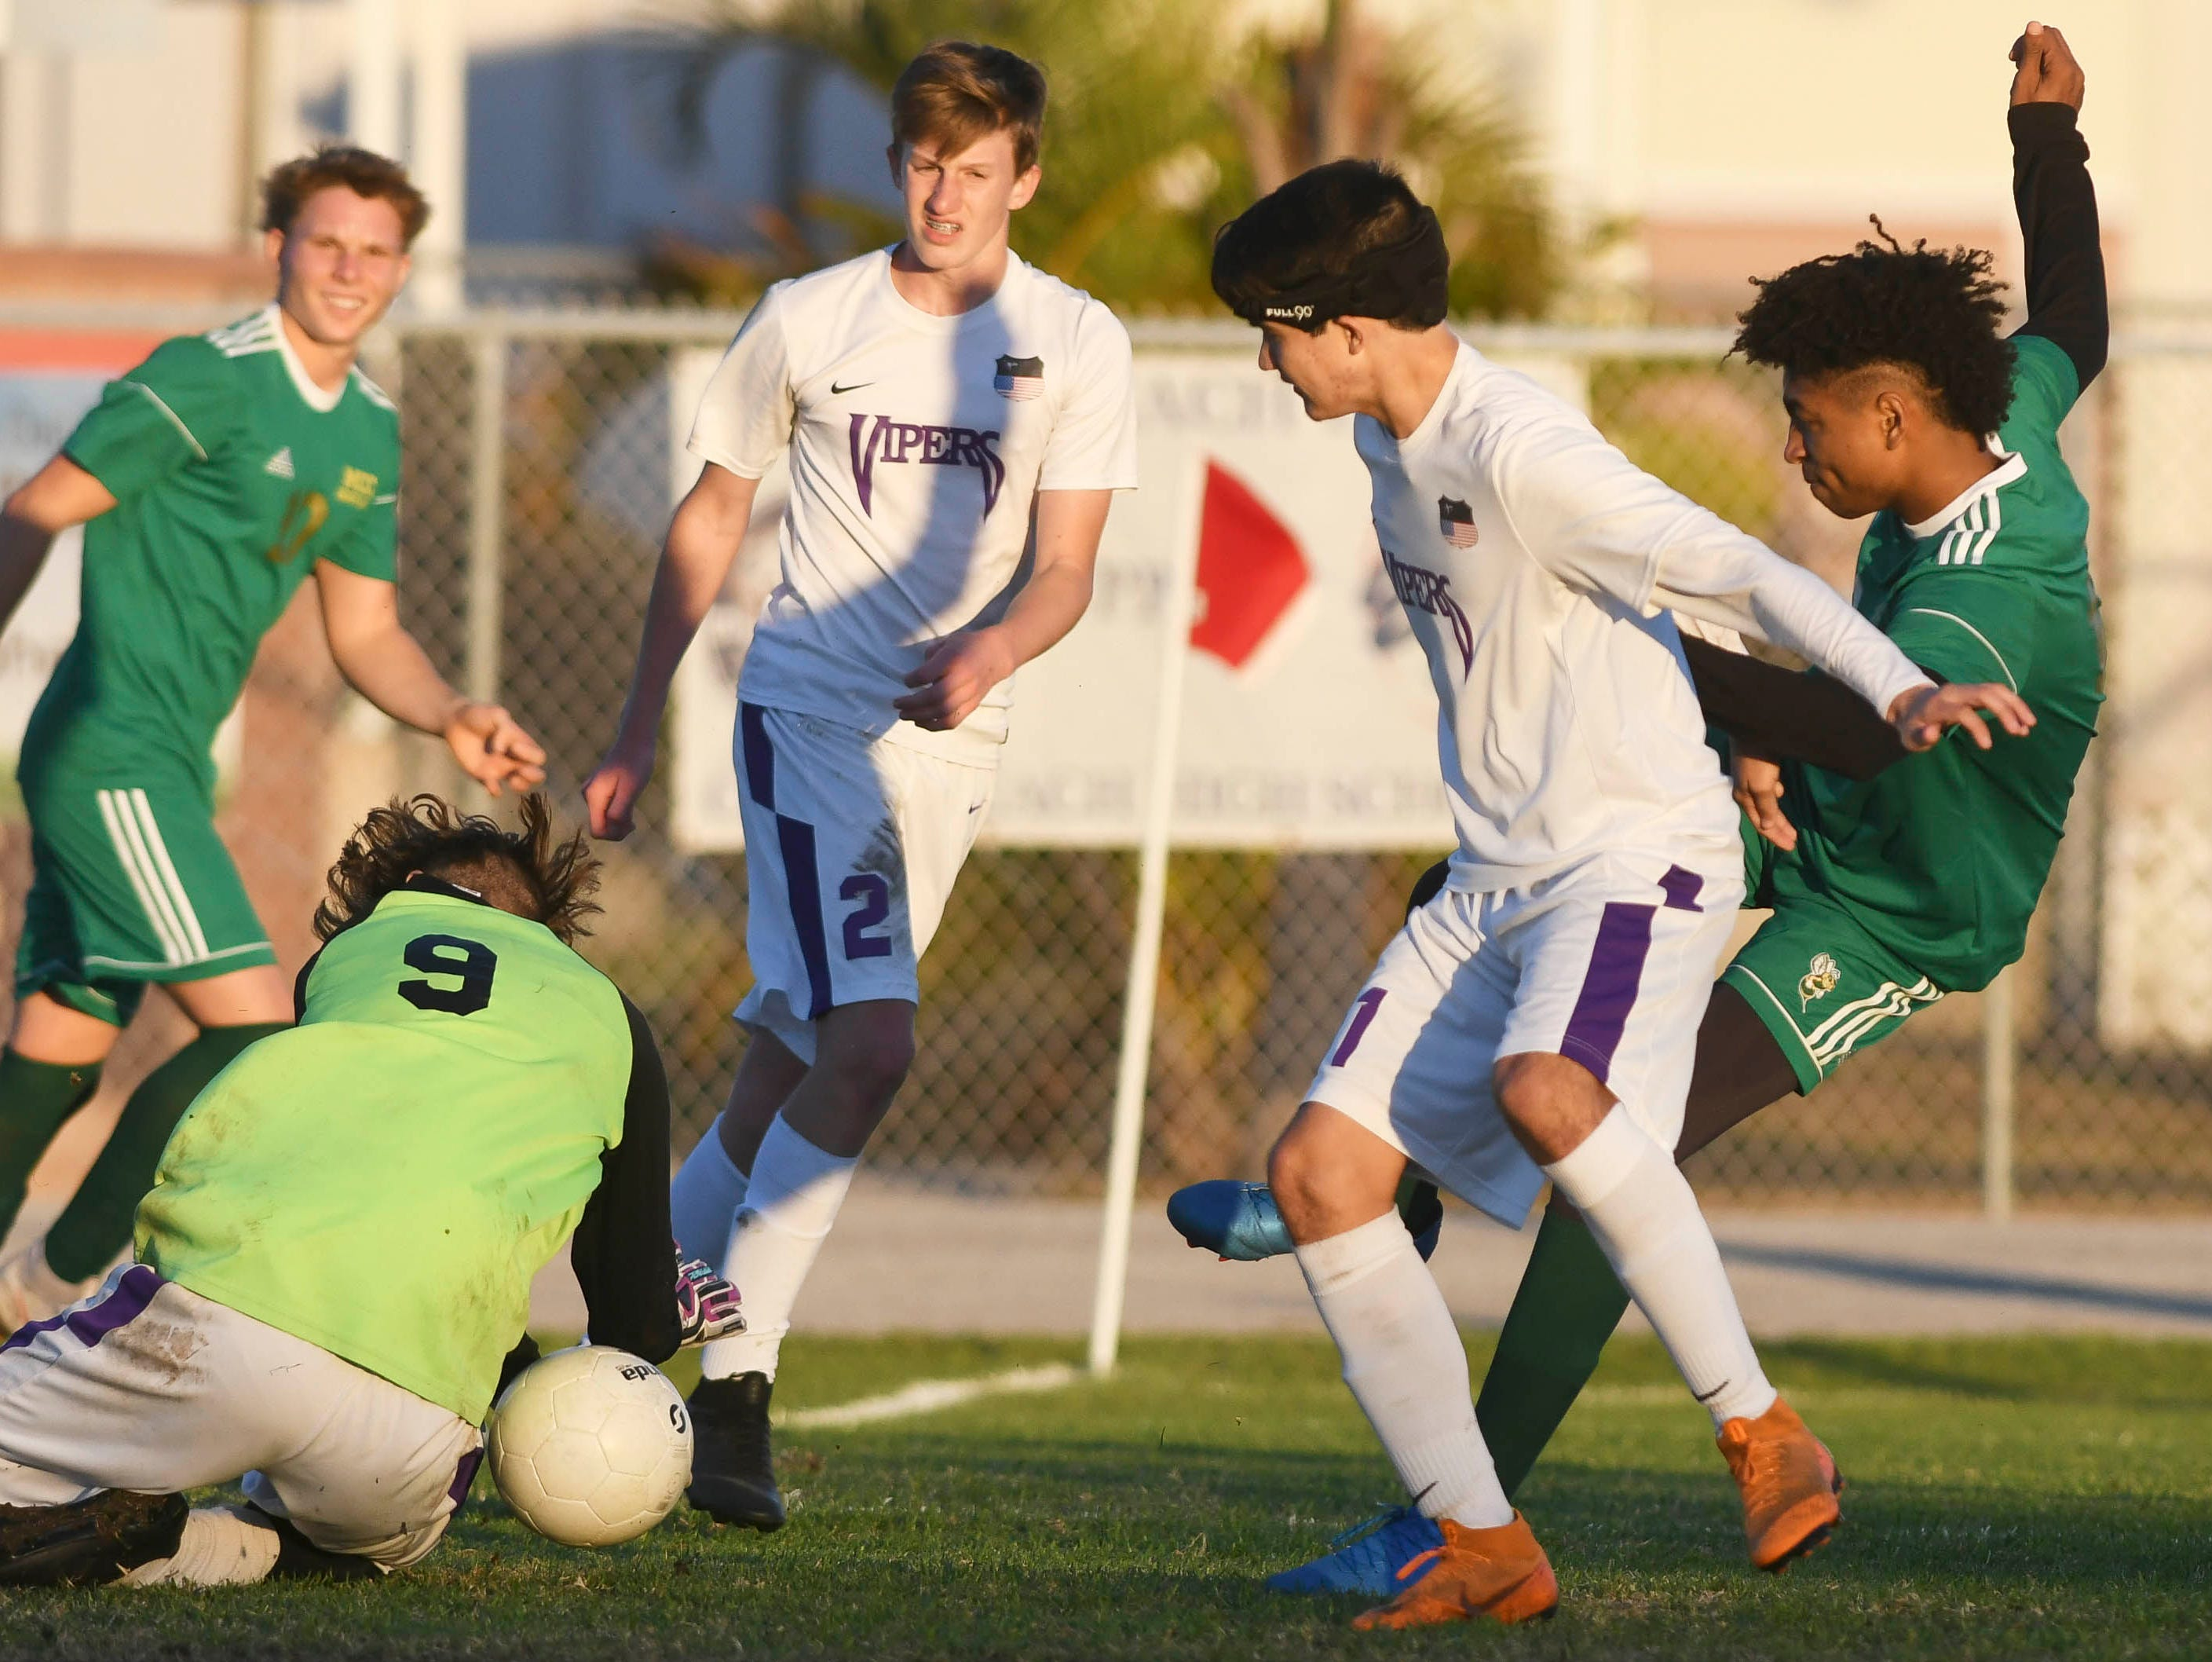 Space Coast goalkeeper Alexander Poole stops a shot by Issac Begin of Melbourne Central Catholic during Tuesday's District 8, Class 2A semifinal at Cocoa Beach High.